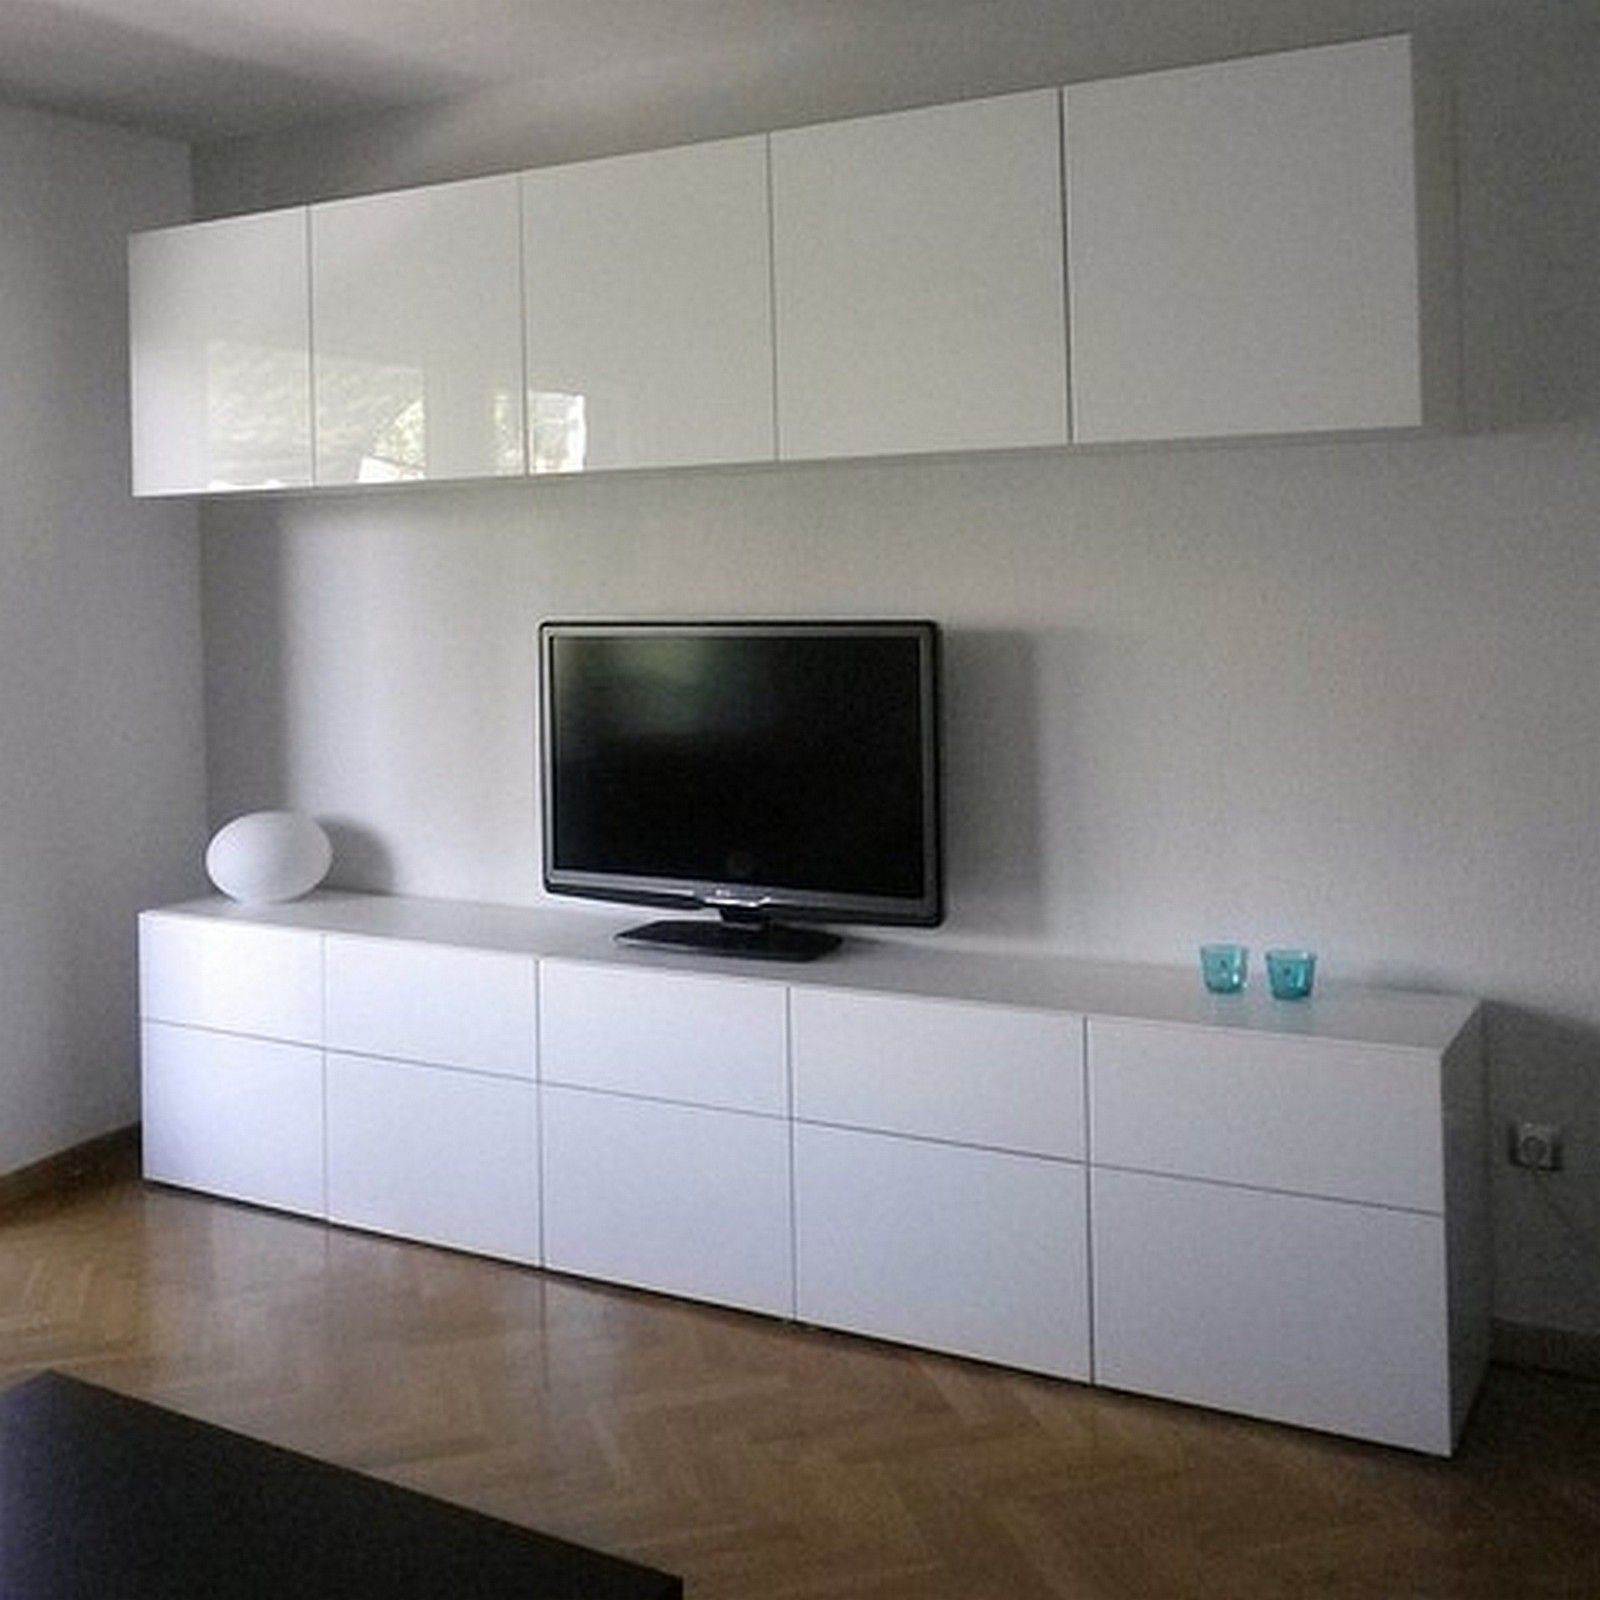 ikea besta cabinets with high gloss doors in living room salas pinterest high gloss. Black Bedroom Furniture Sets. Home Design Ideas